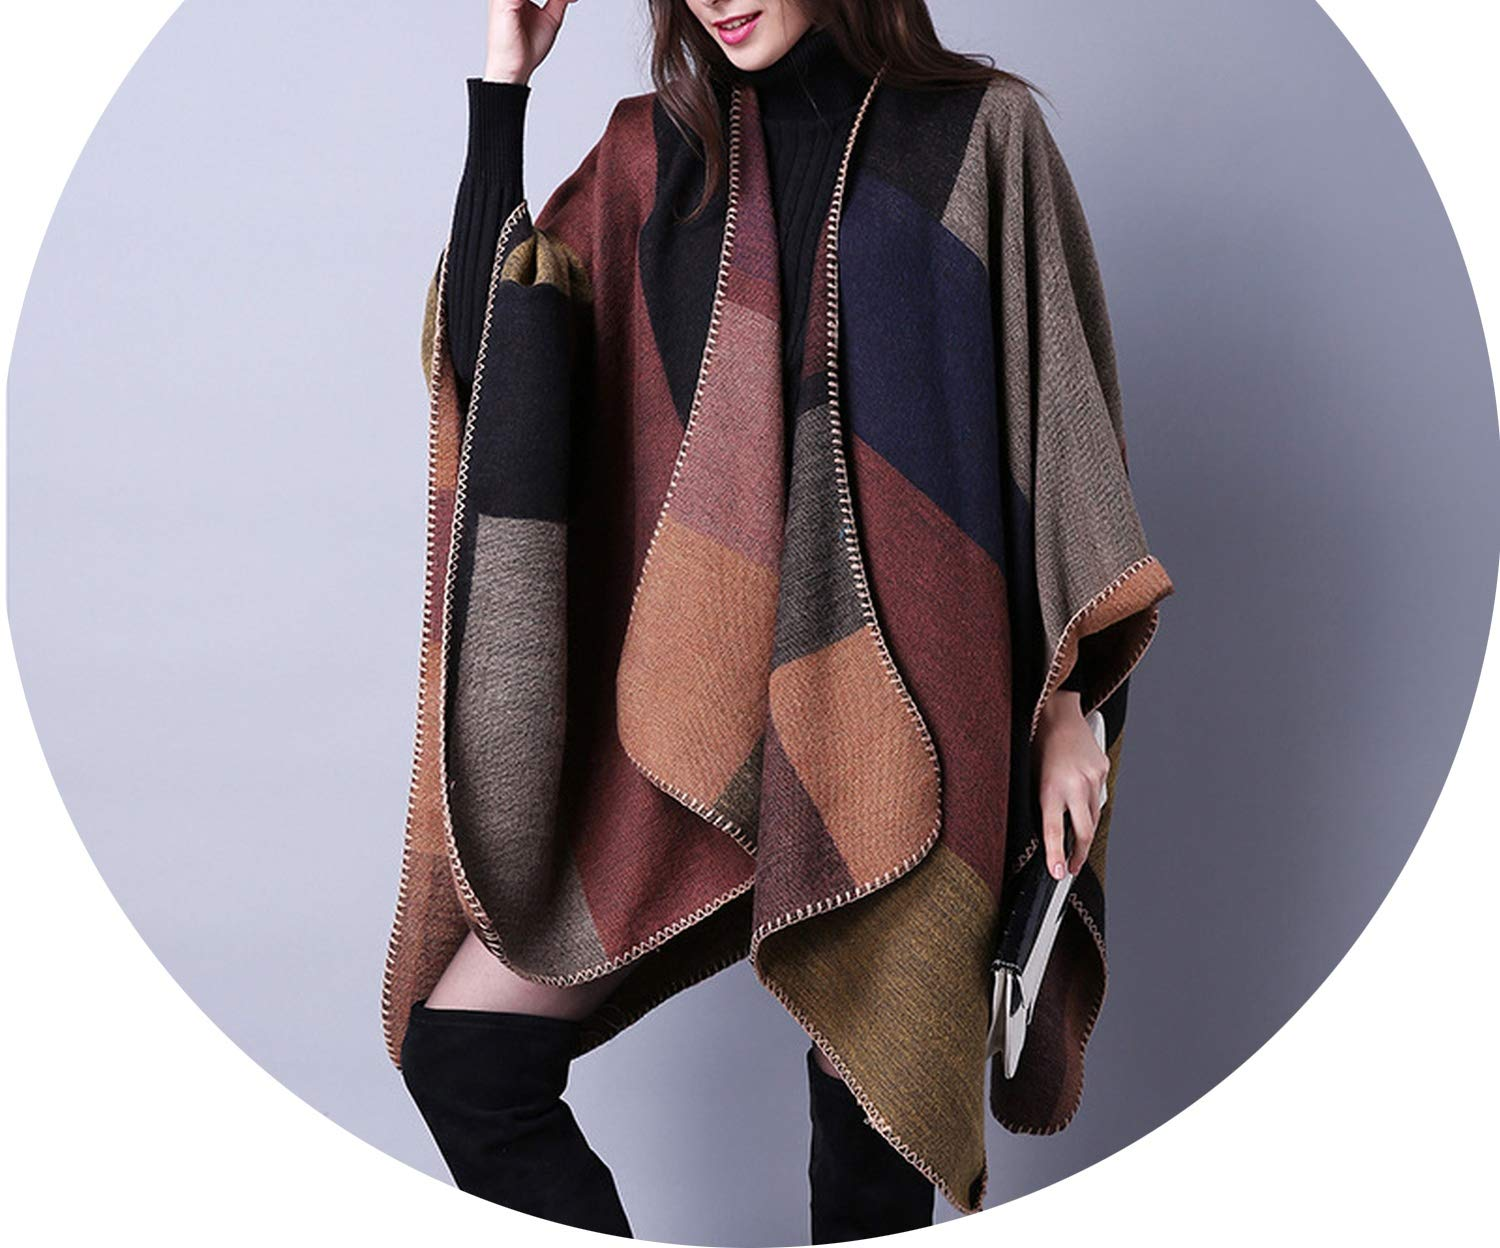 1 2018 Women Winter Scarf Warmer Shawl Ladies Vintage Plaid Blanket Knit Wrap Cashmere Poncho Capes,01